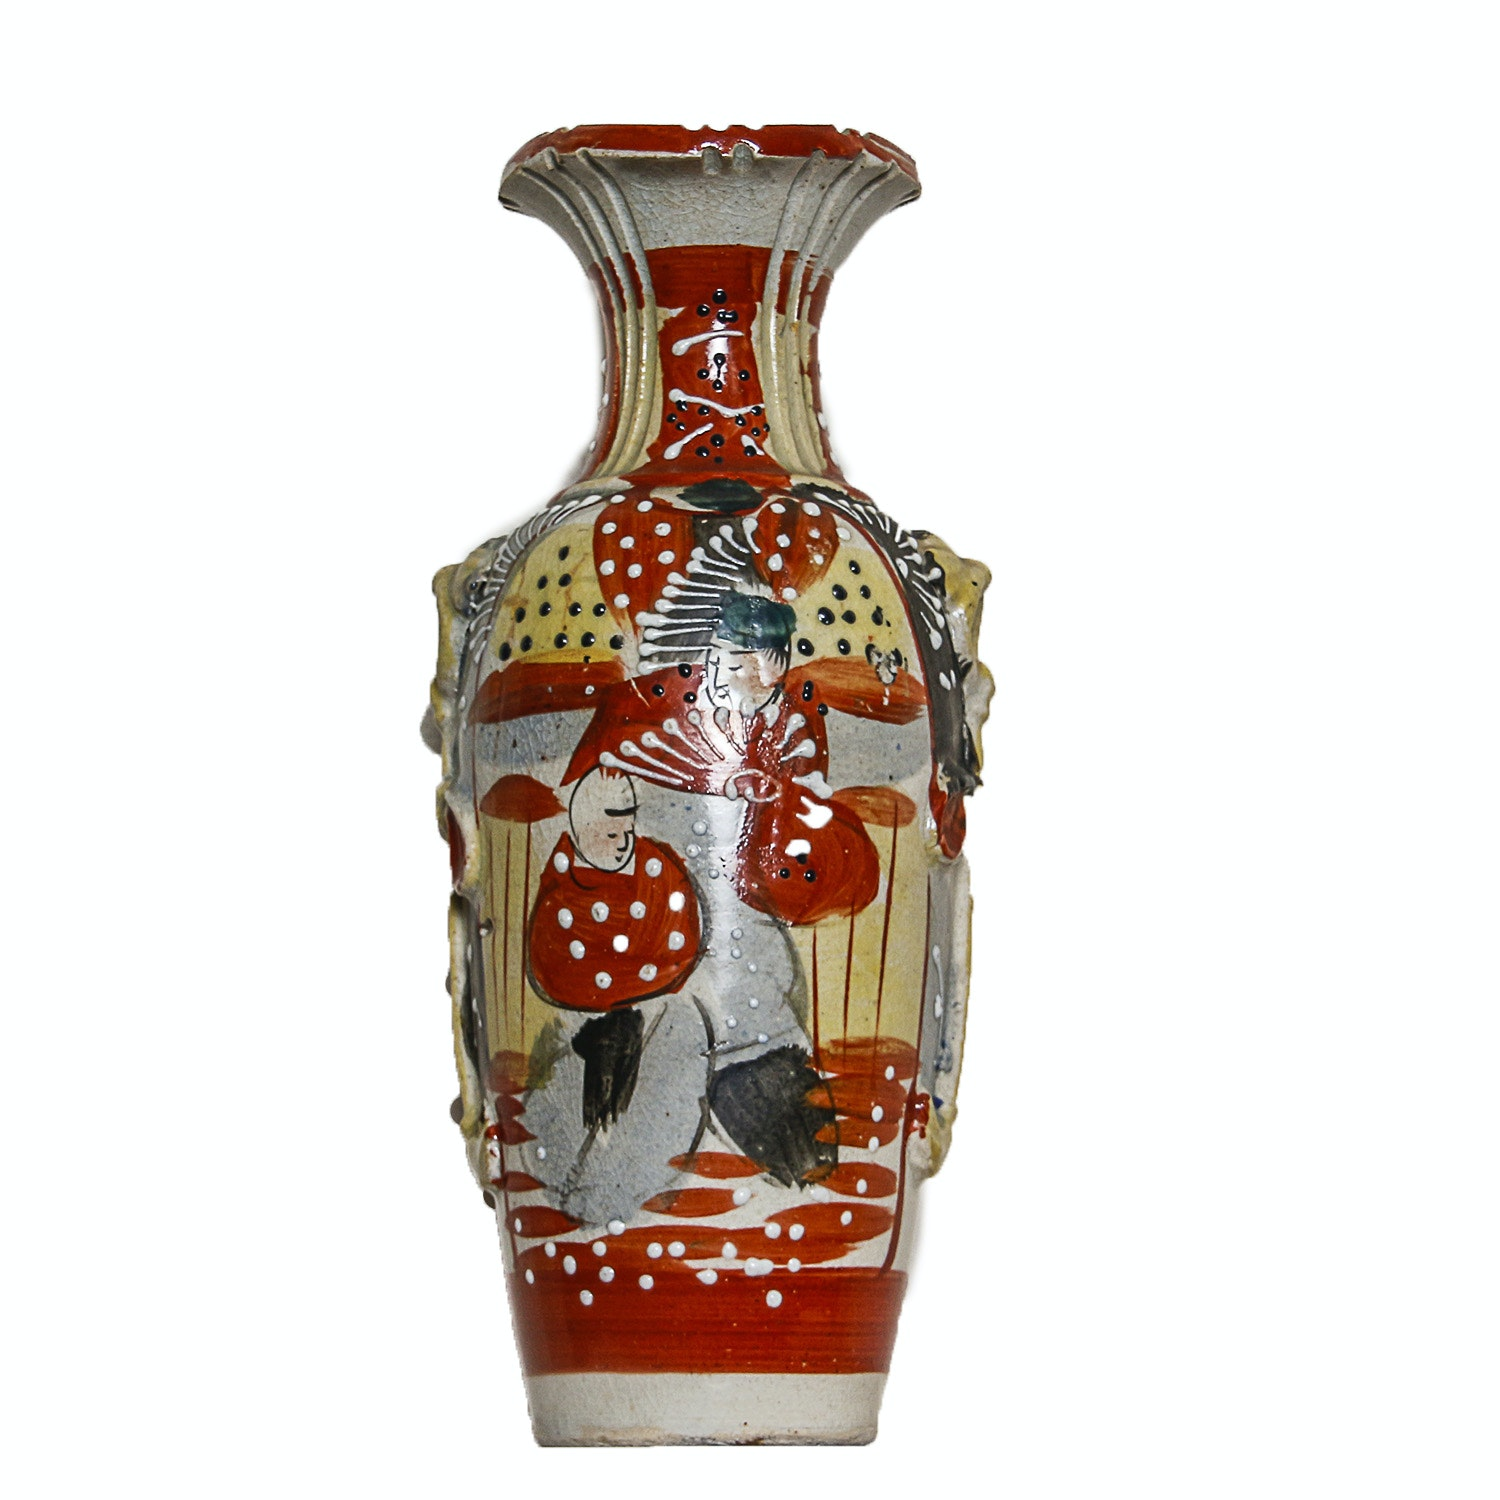 Japanese Hand-Painted Ceramic Vase with Moriage Accents